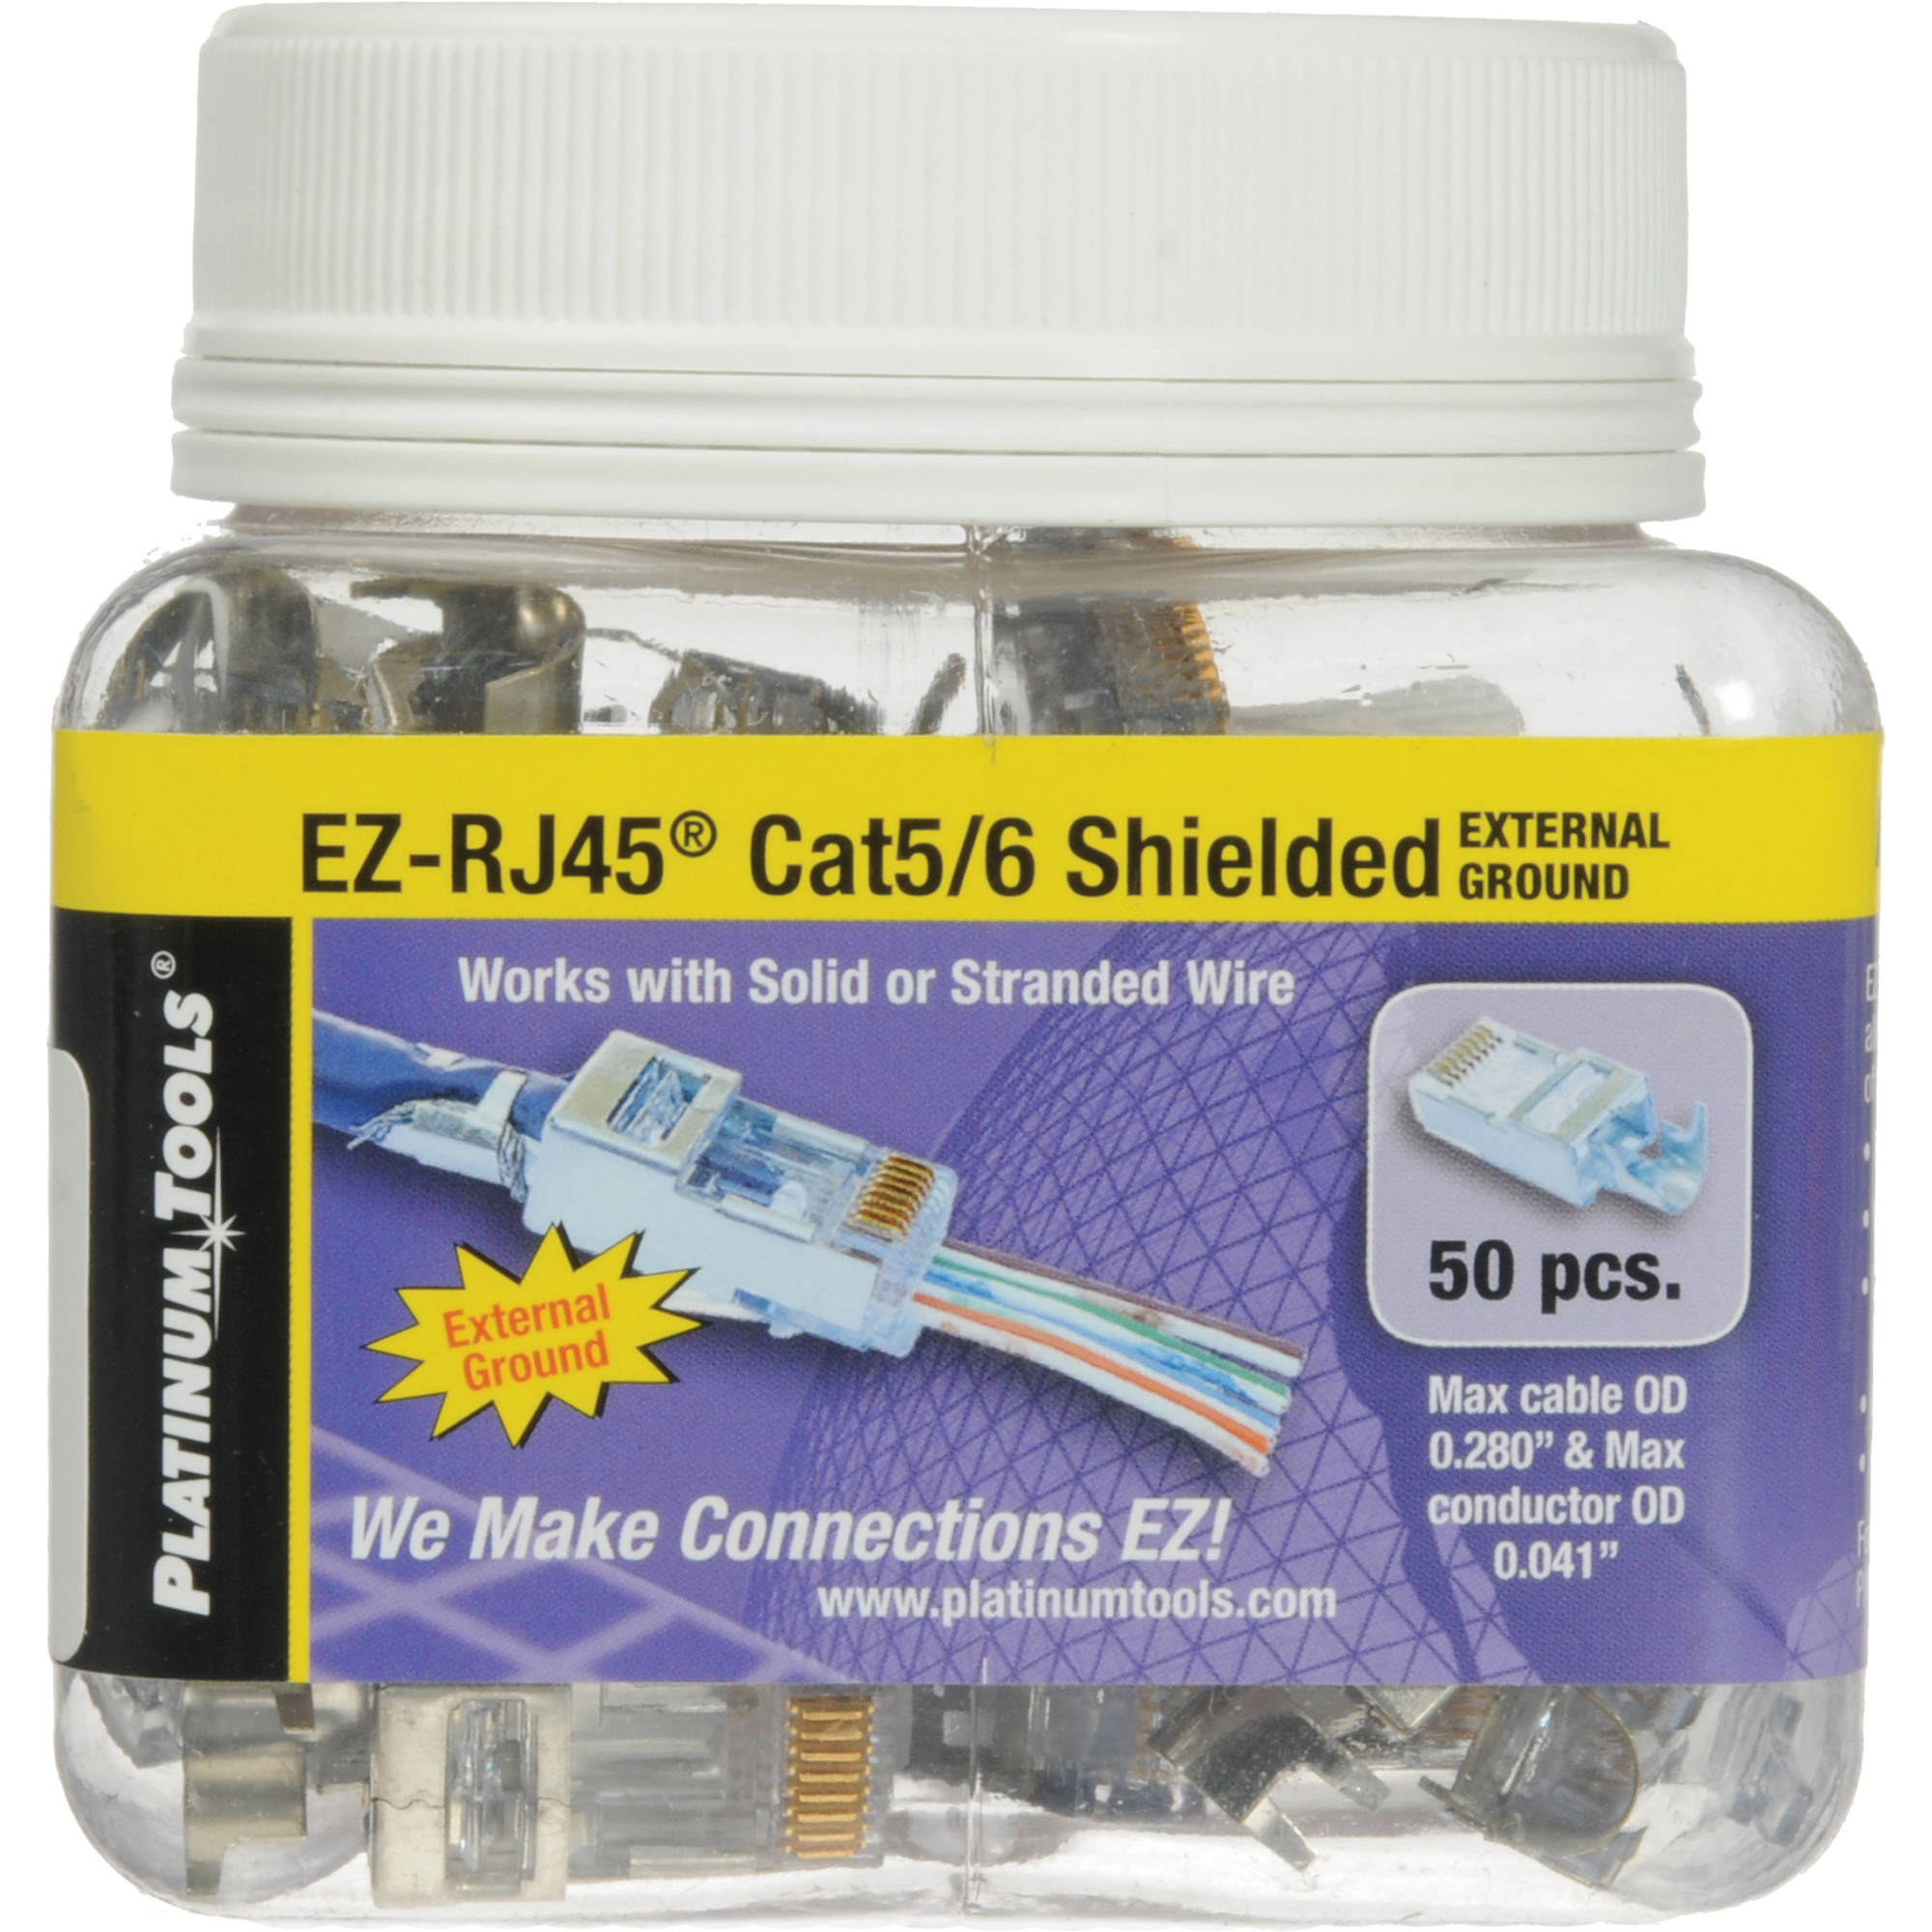 Platinum Tools Shielded Ez Rj45 Connectors For Cat5e 202022j Bh The Wiring Of Conductors To Has Also Been Established By Cat6 With External Ground Jar